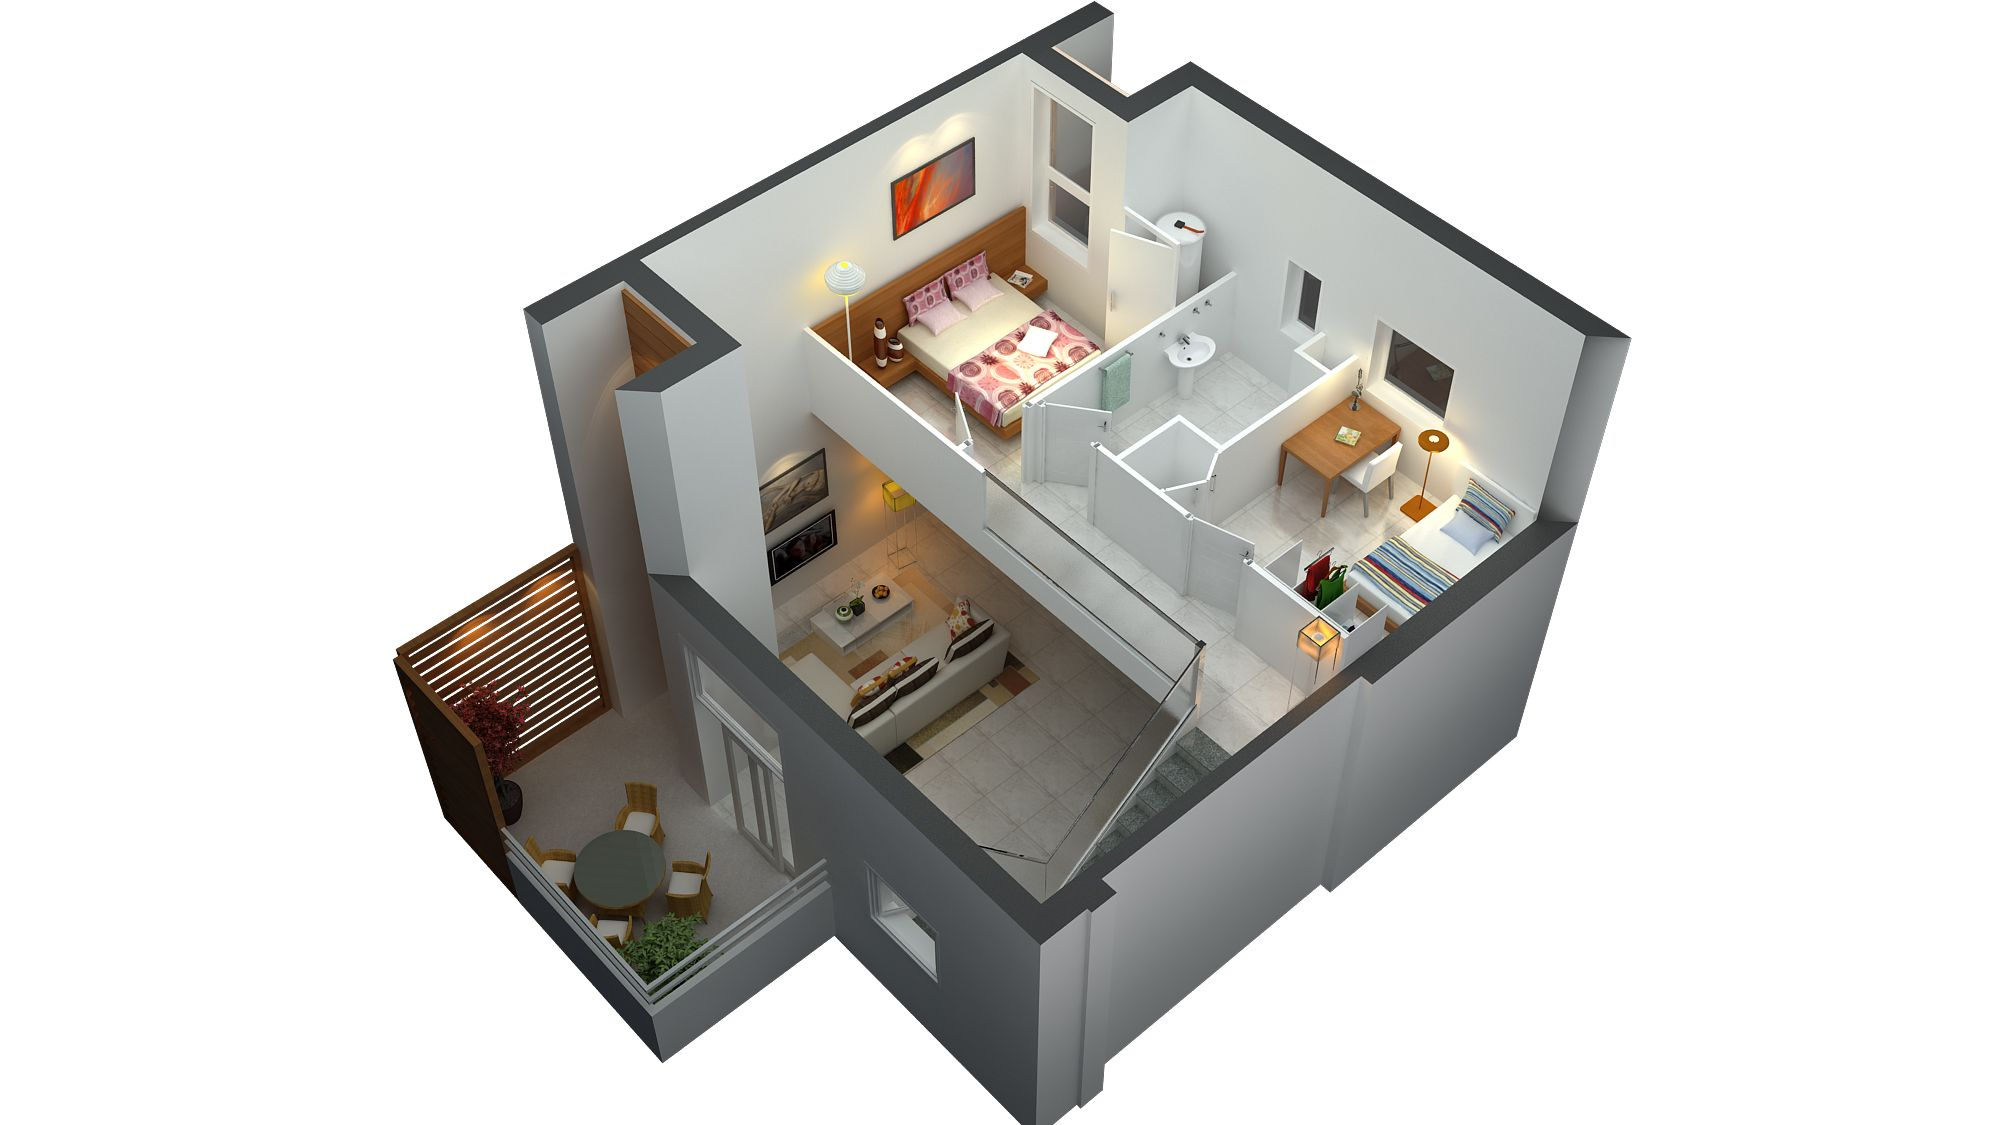 3d floor plan small house plans pinterest 3d for Architecture design house plans 3d